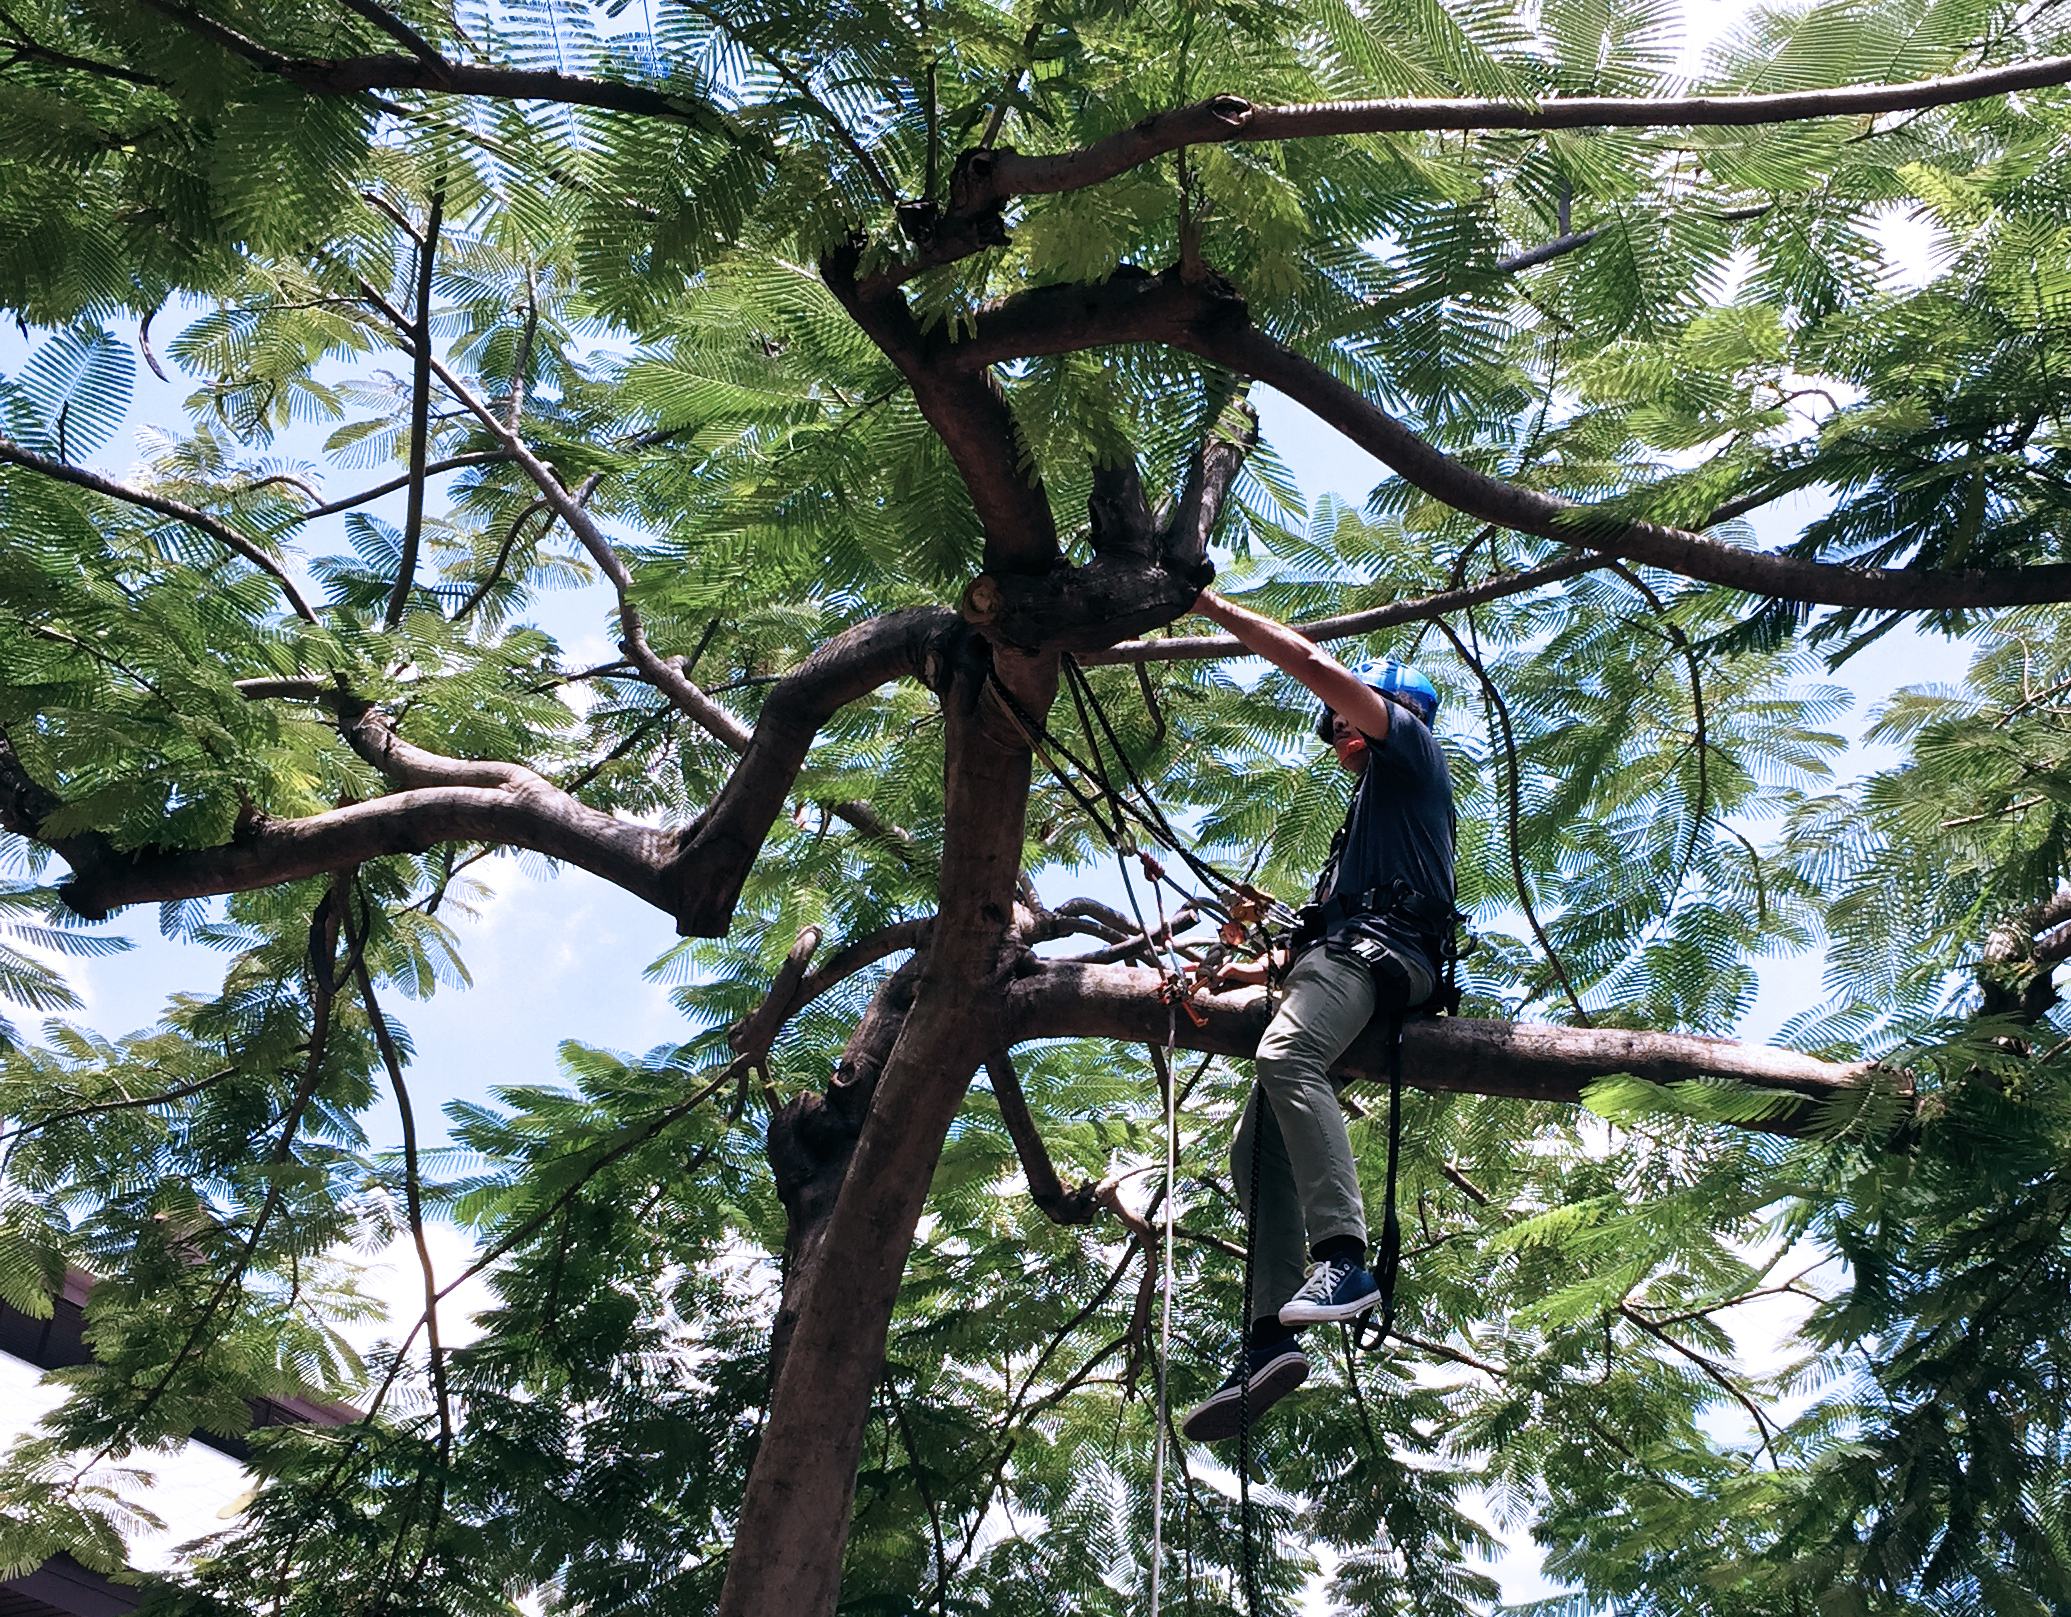 Train Arborists for Conserving Big Trees